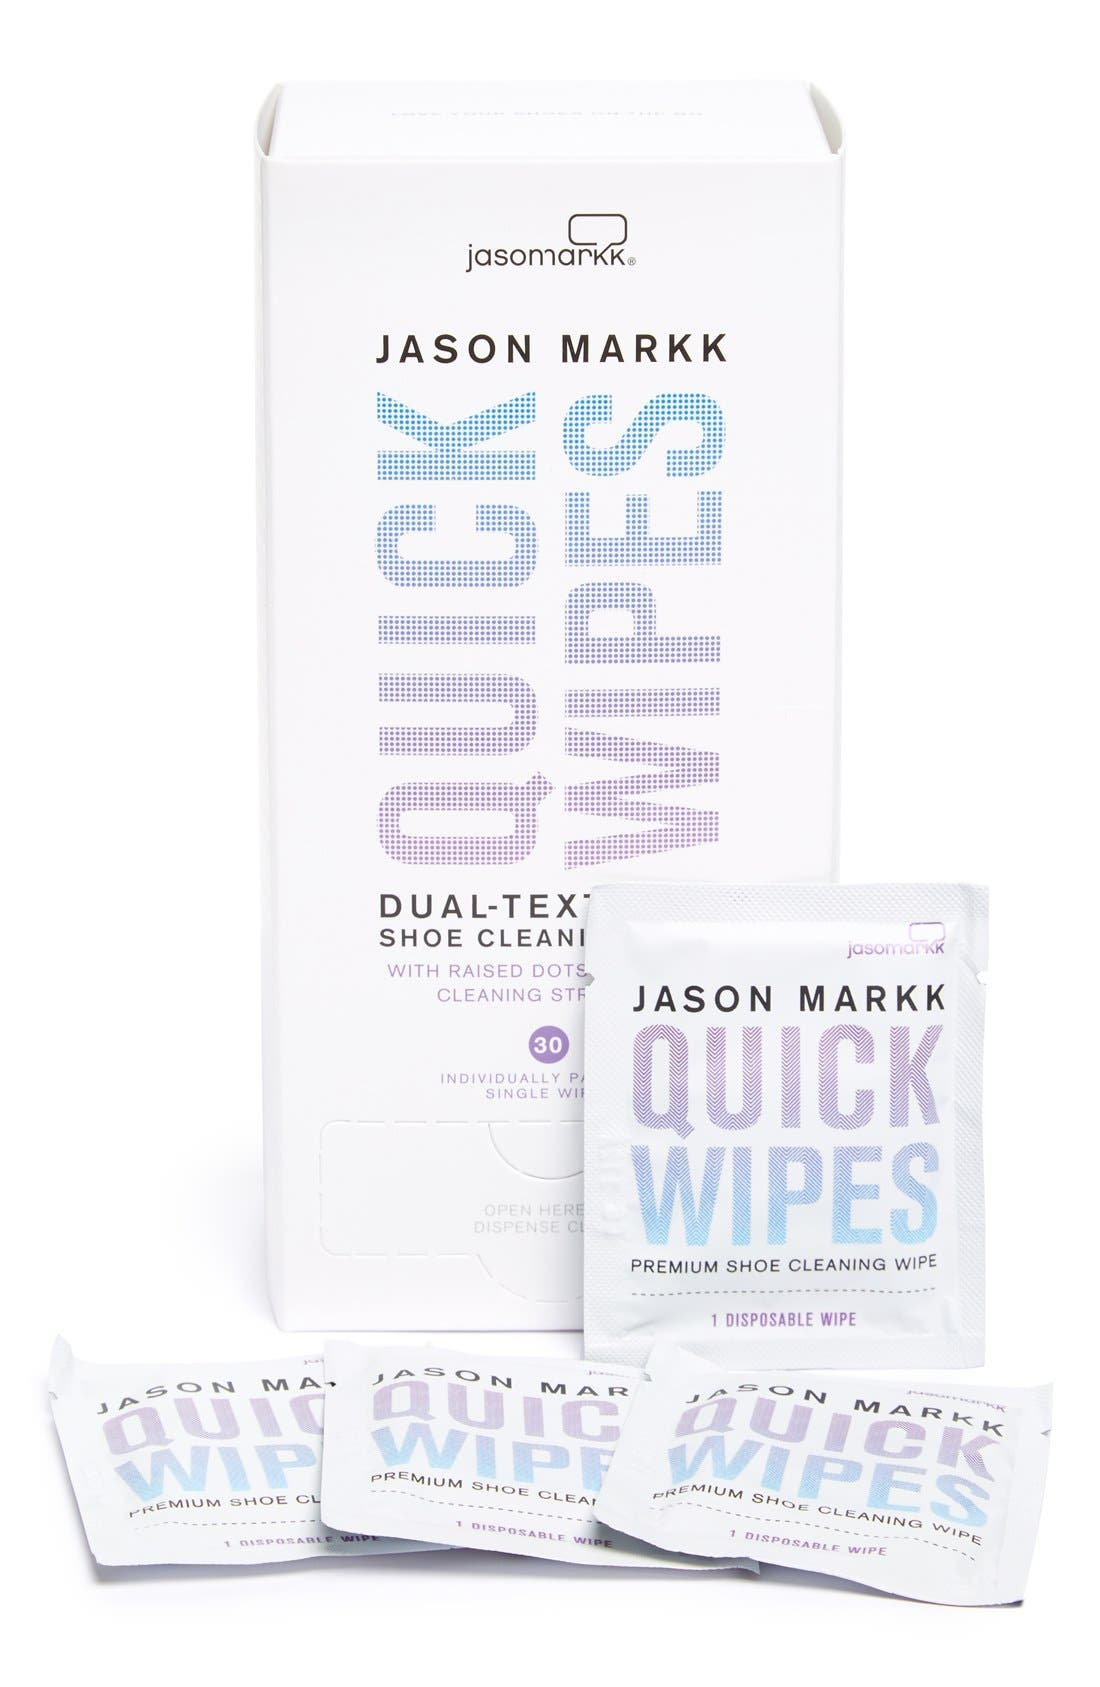 JASON MARKK 'Quick Wipes' Shoe Cleaning Wipes